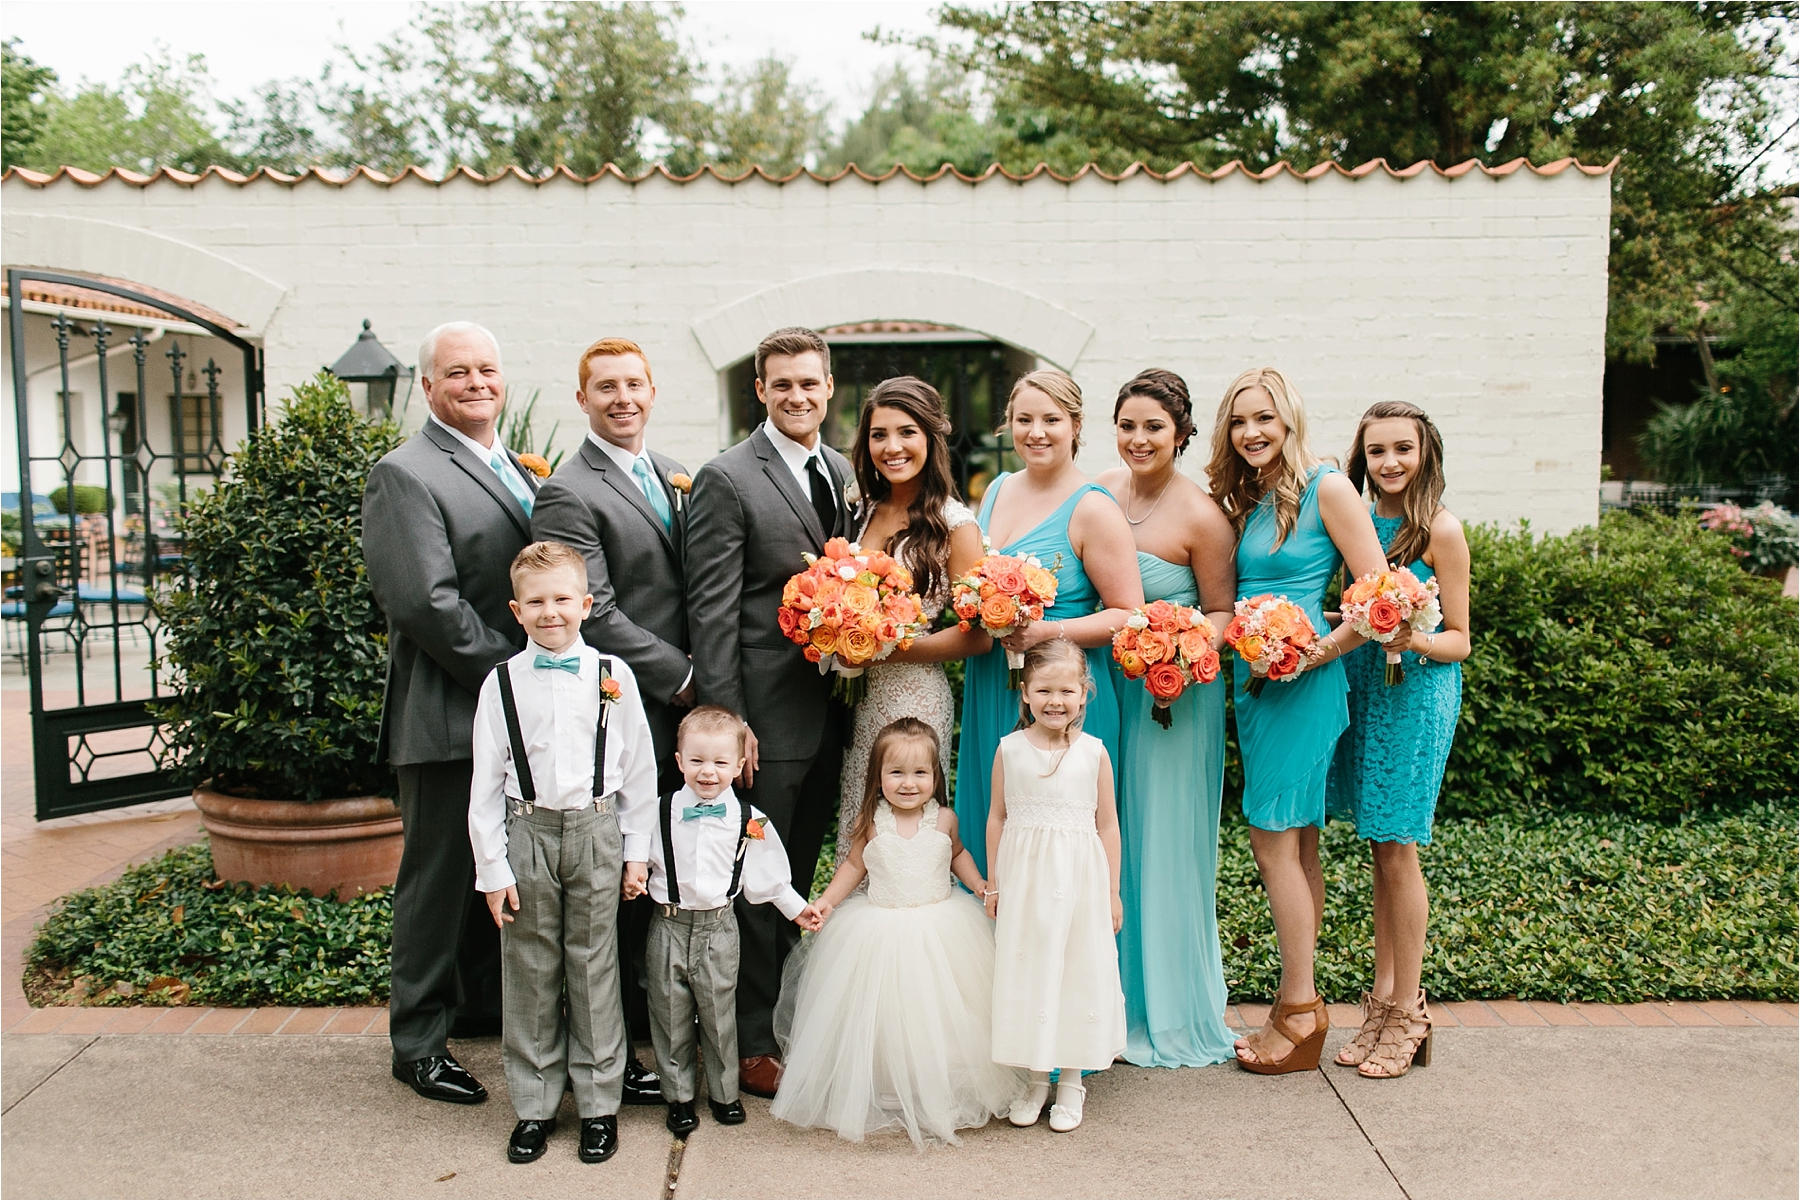 Devyn + Caden __ a Dallas Arboretum Garden Style Wedding by North Texas Wedding Photographer Rachel Meagan Photography __ 058